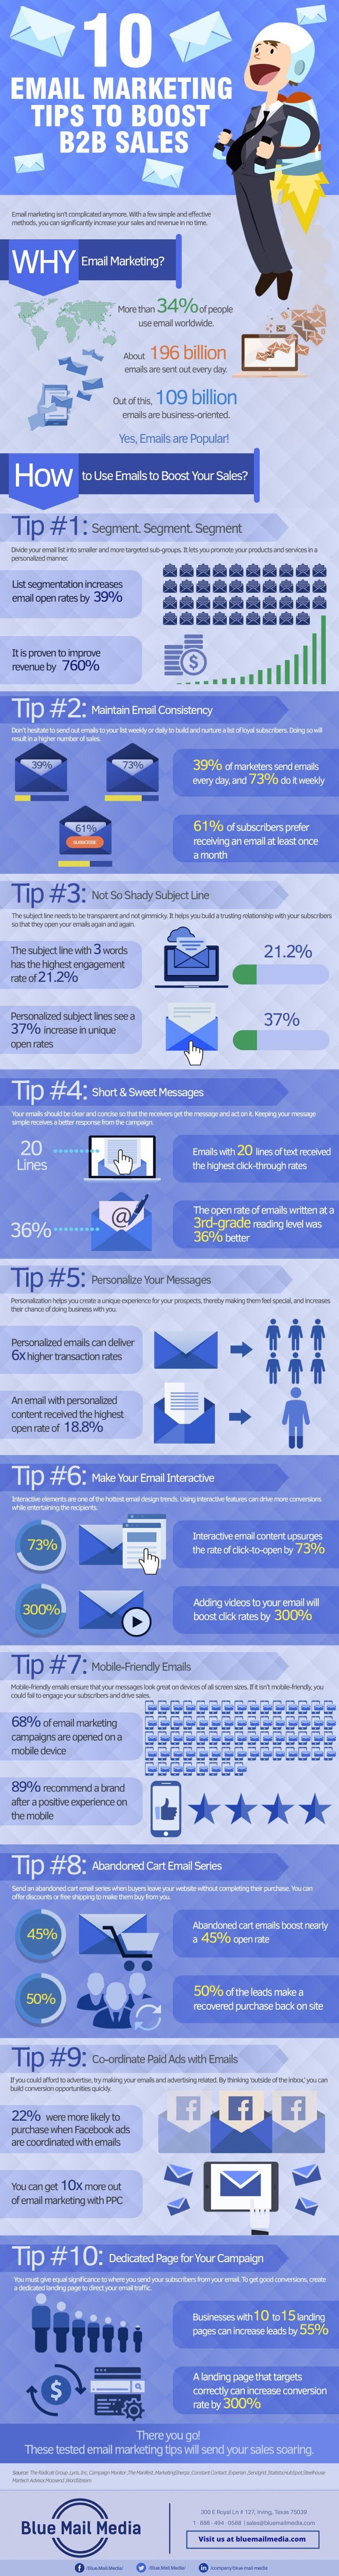 10 Email Marketing Tips to Boost B2B Sales #infographic